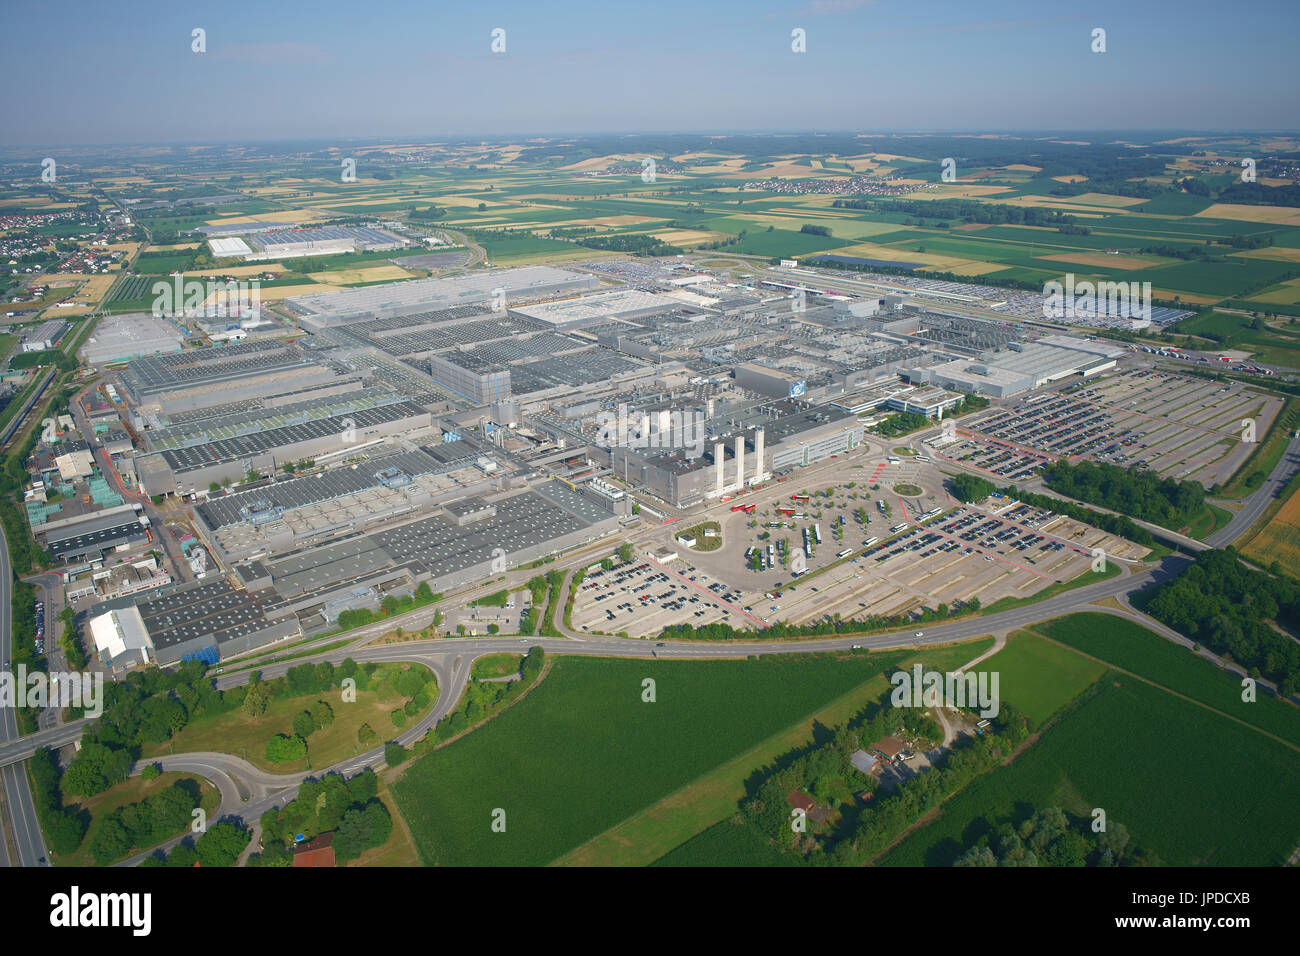 MEGA FACTORY WITH A YEARLY PRODUCTION OF 340,000 CARS (in 2015) (aerial view). BMW Group Plant Dingolfing, Bavaria, Germany. - Stock Image